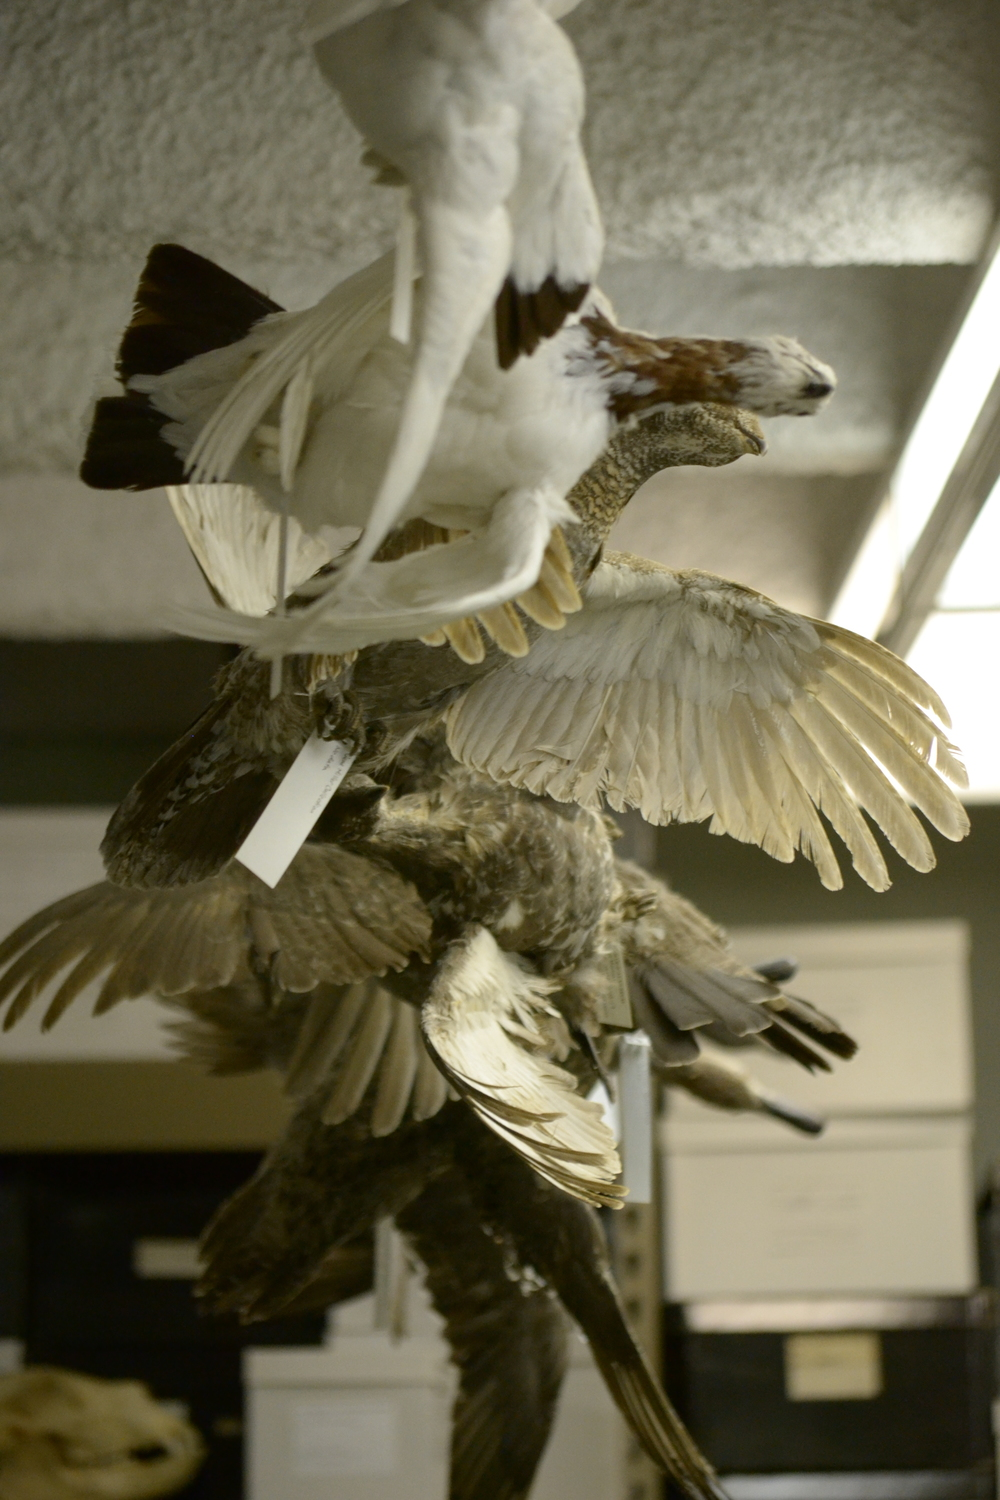 Taxidermied birds hung in the museum.